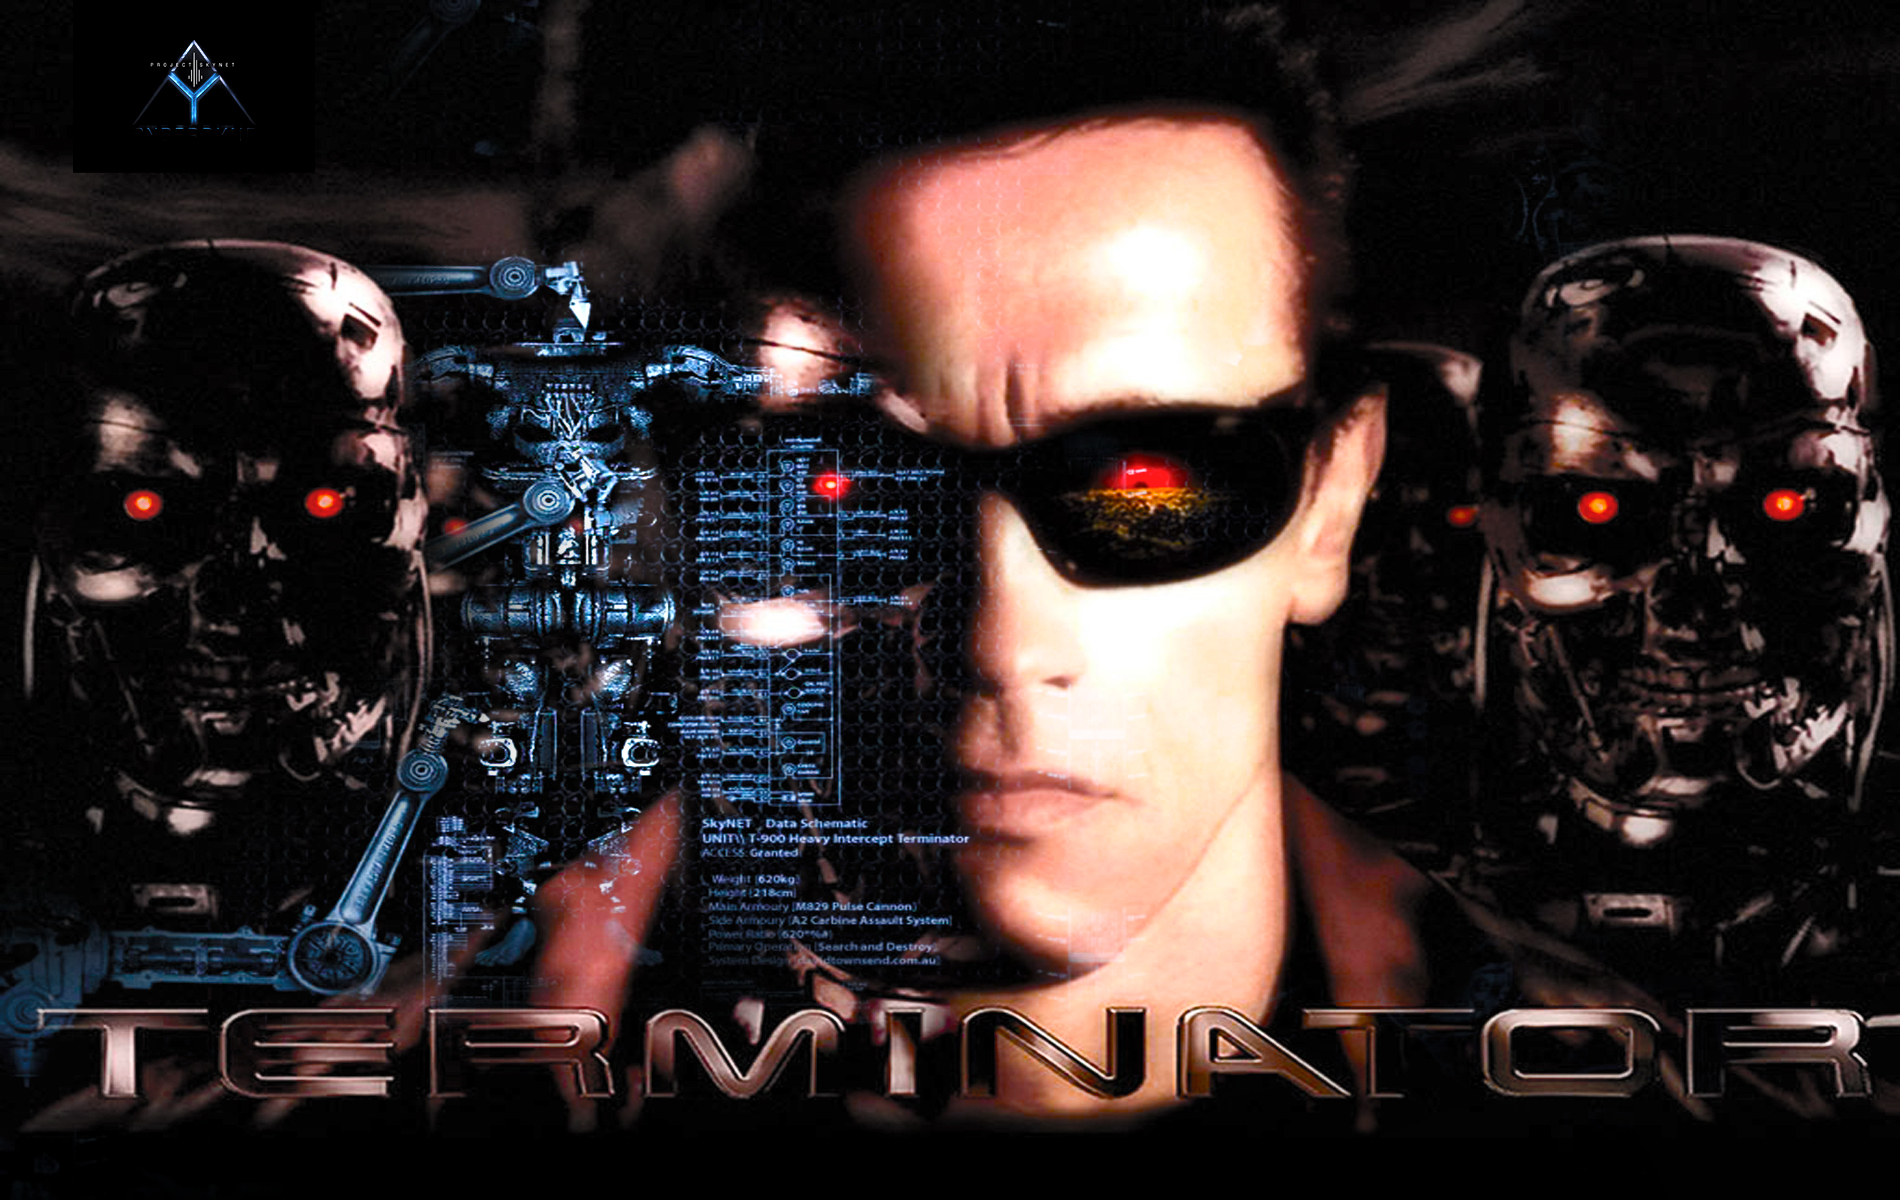 Arnold Terminator Wallpaper and Background Image 1900x1200 ID 1900x1200